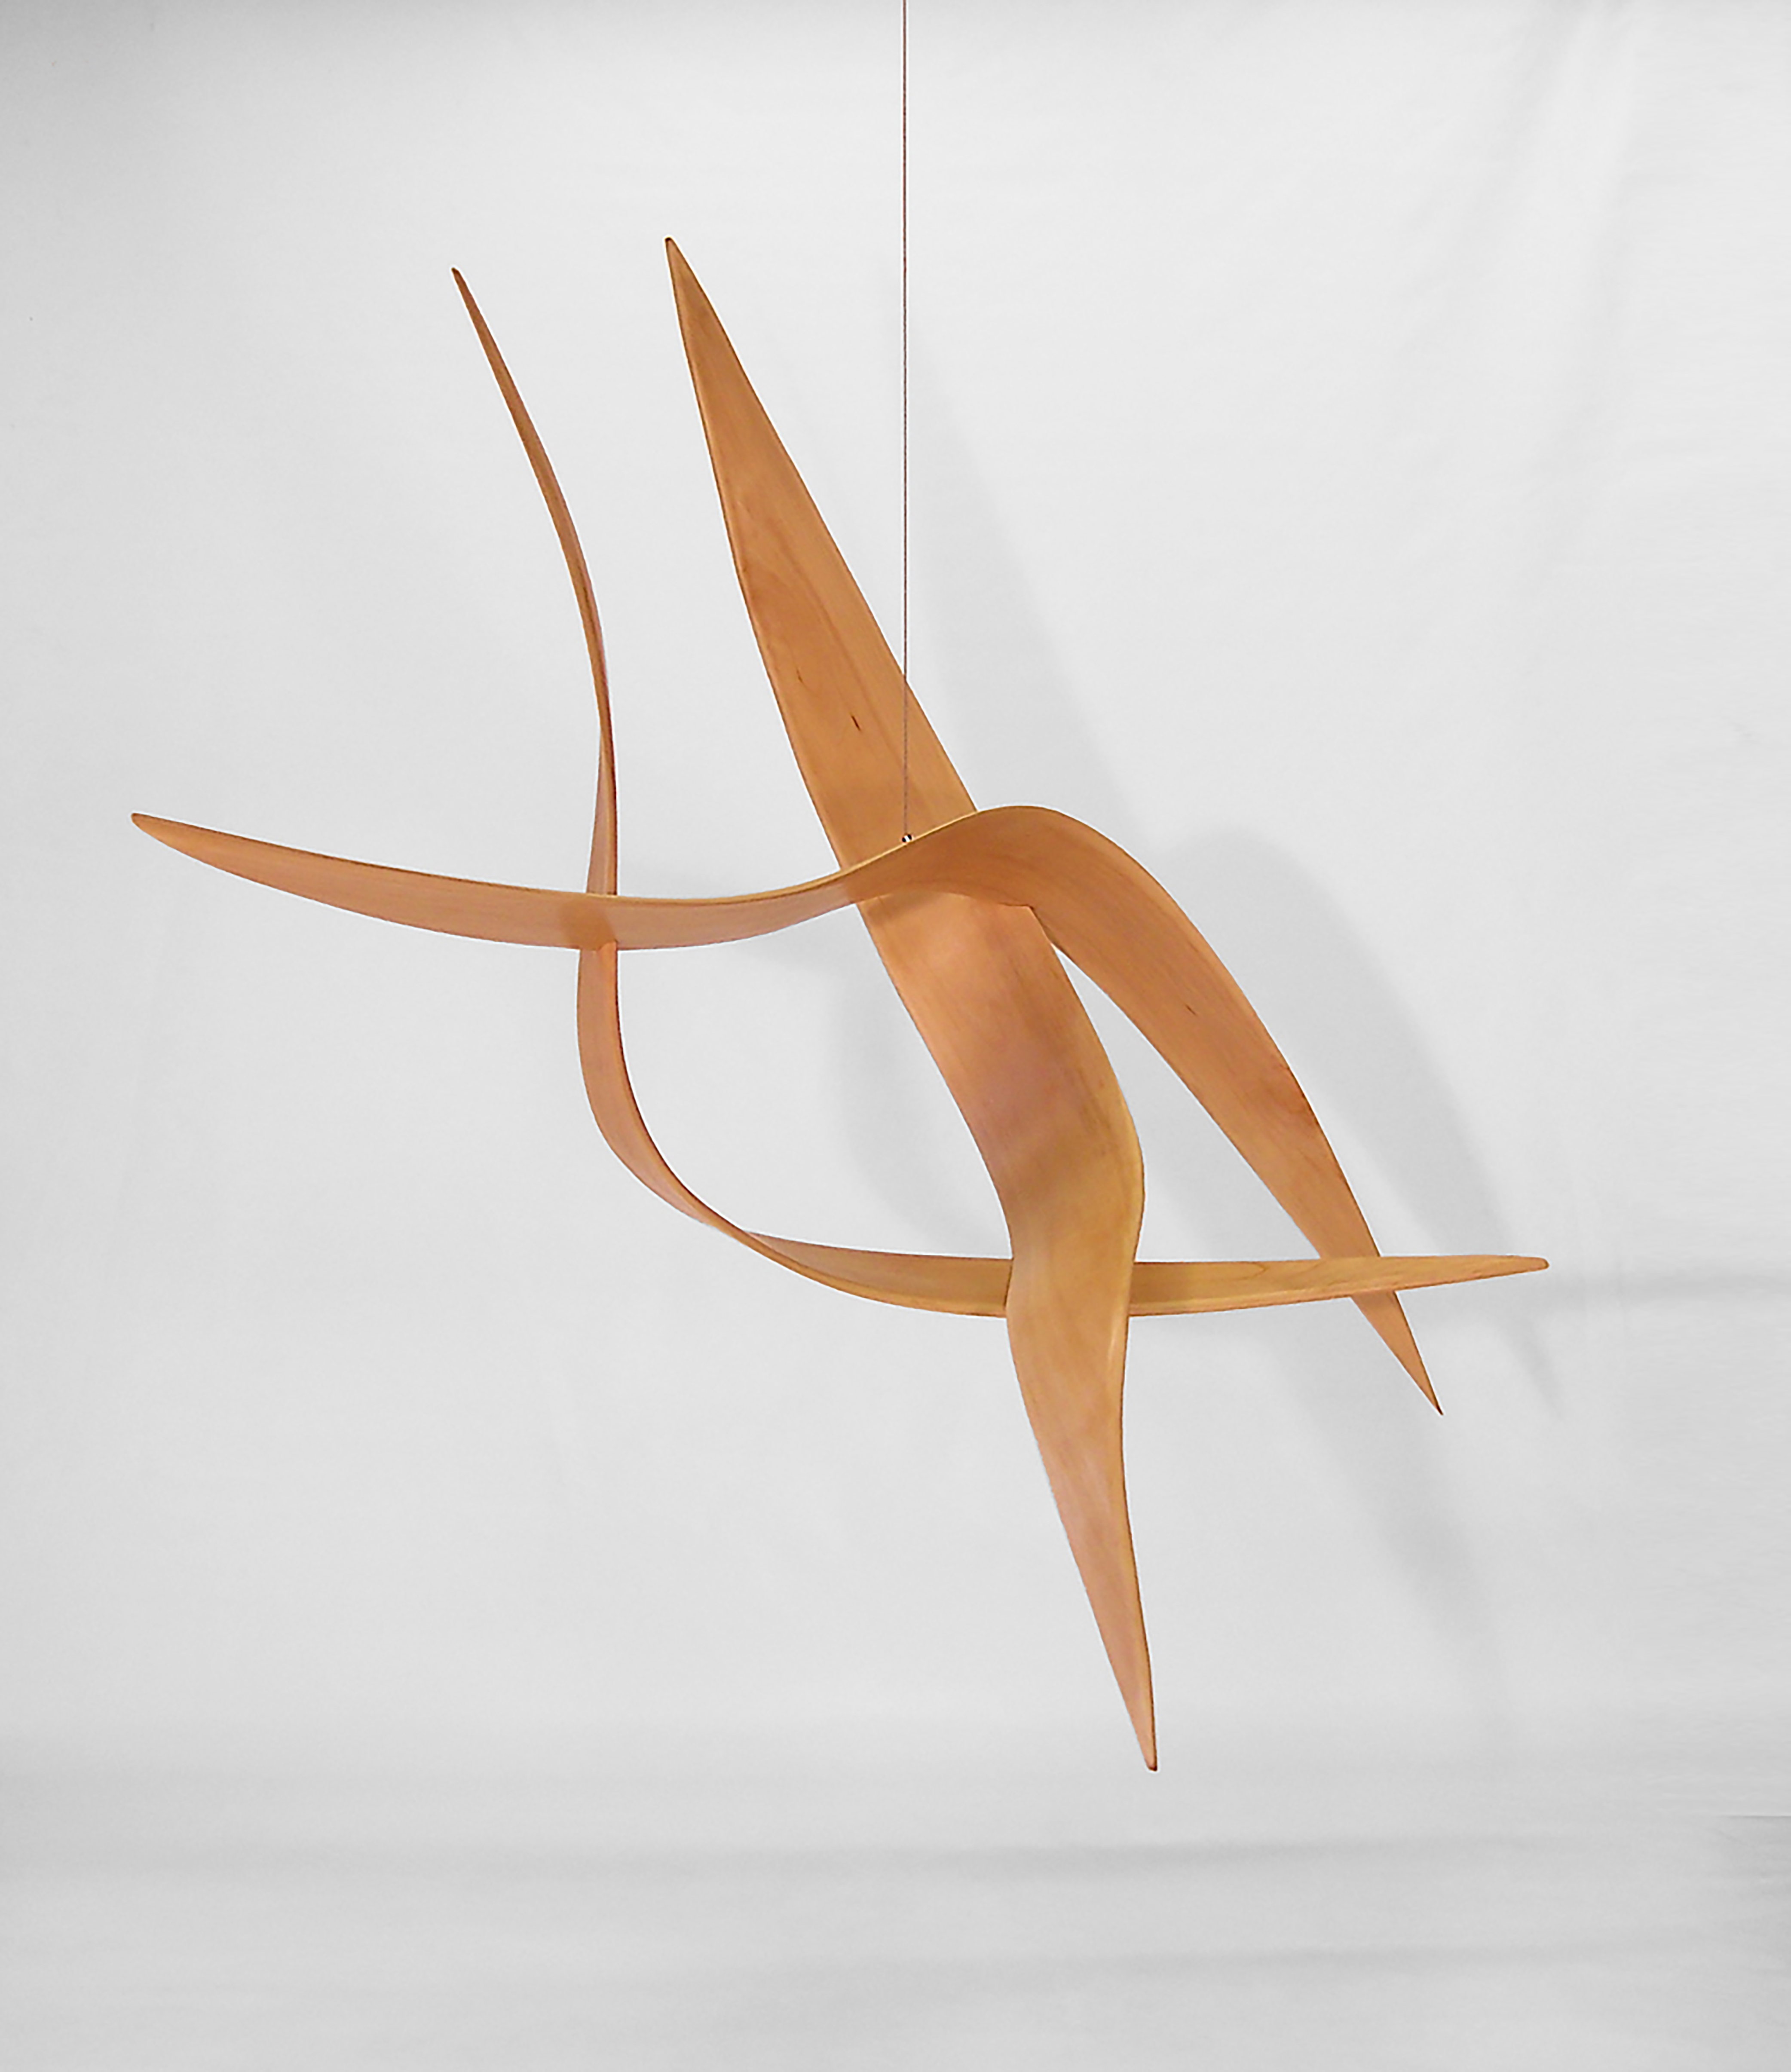 Rick Lazes, Bemsha Swing, Sycamore, 84 x 48 x 84 inches